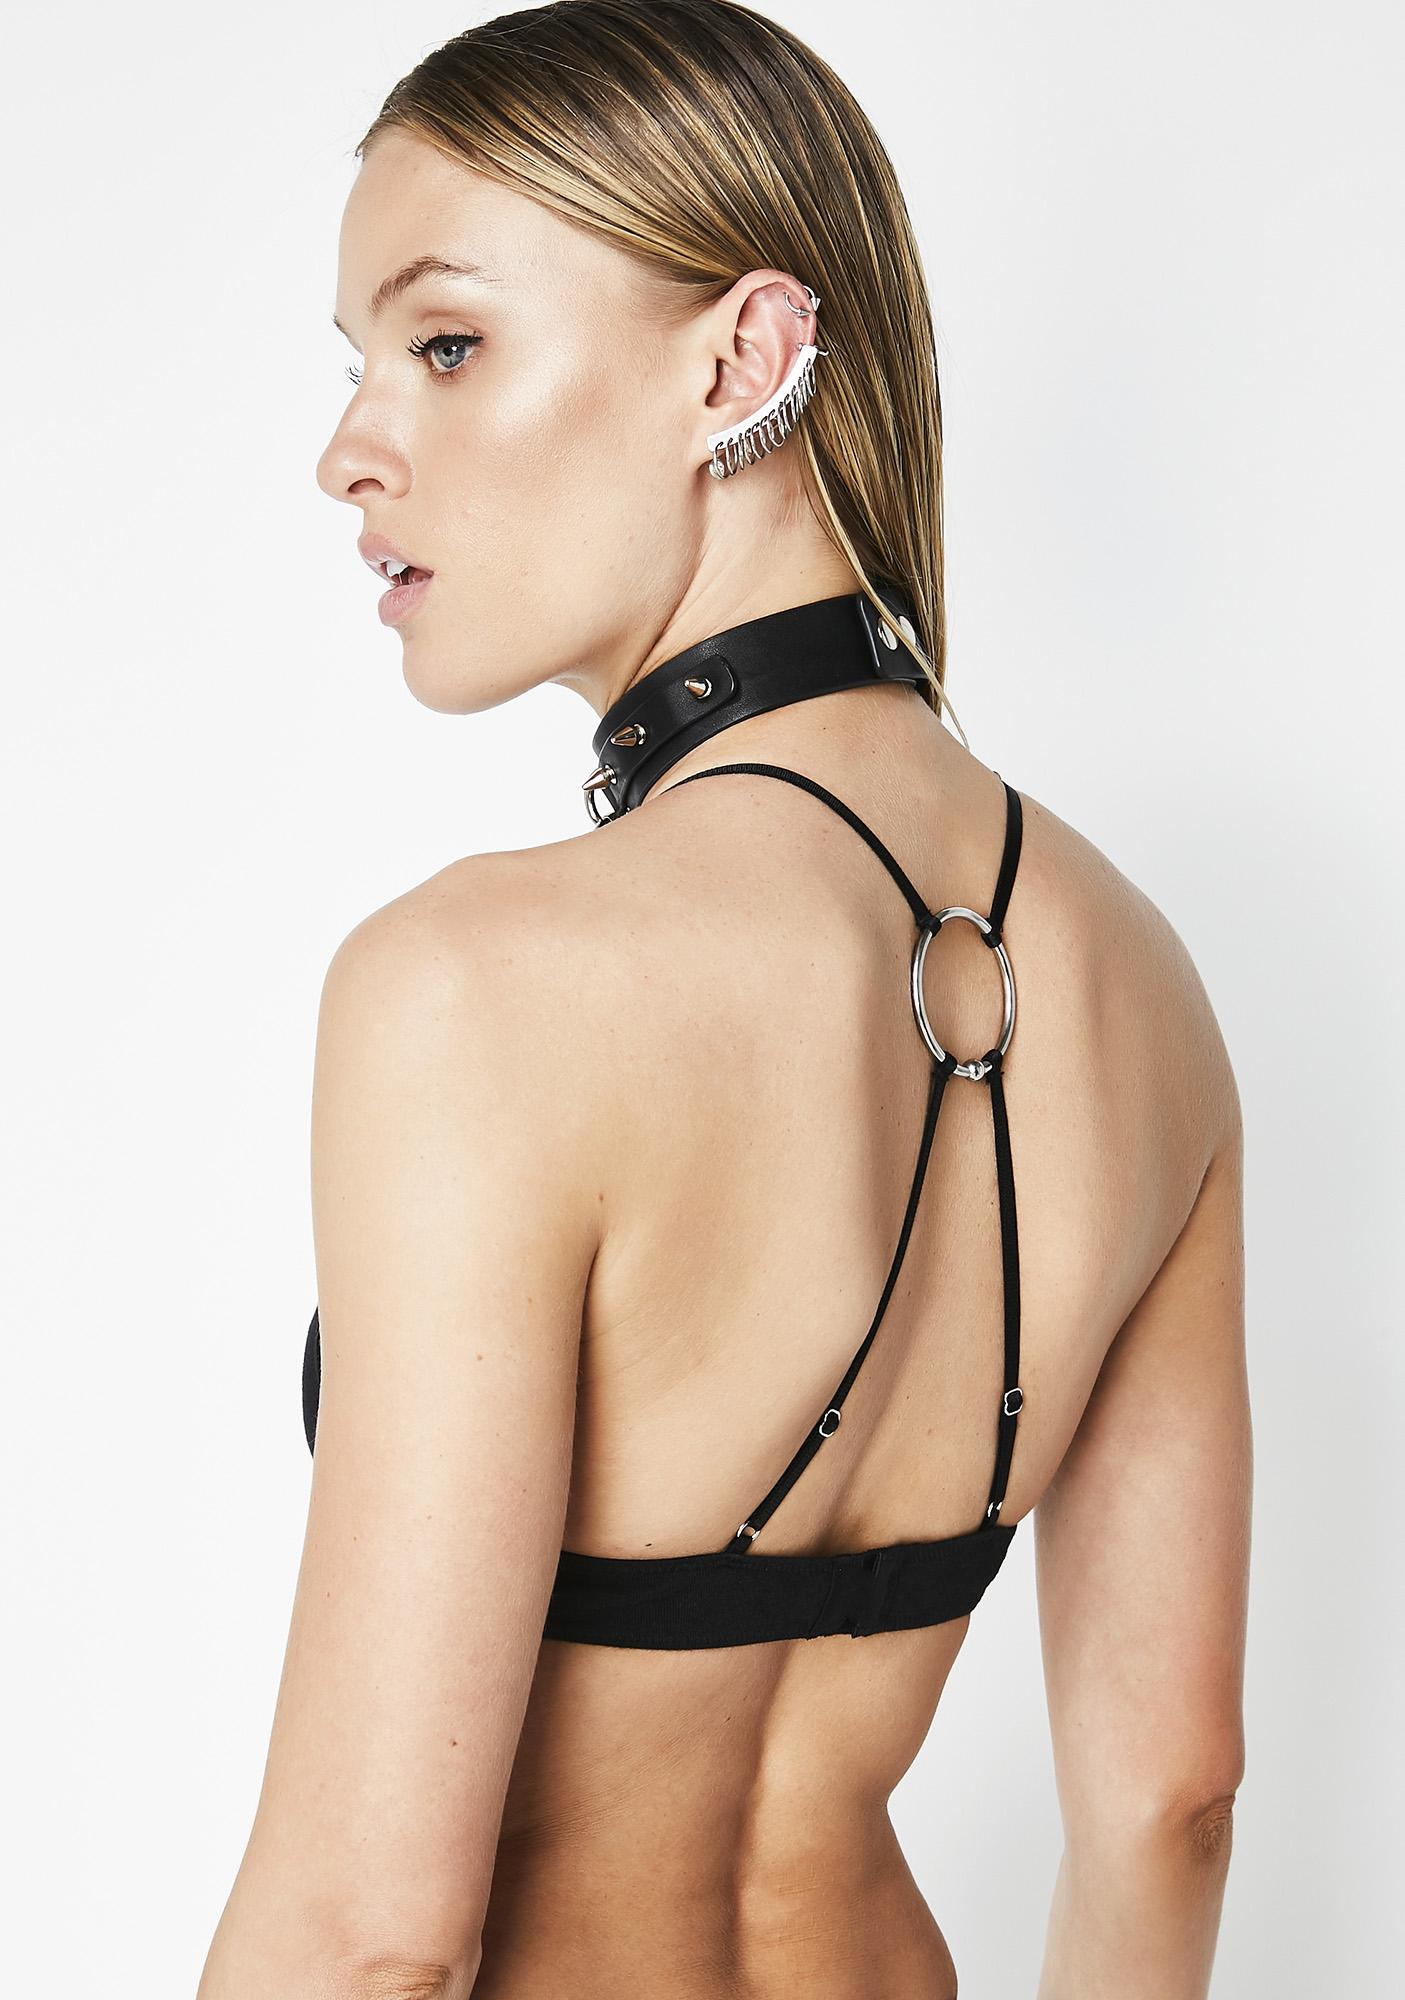 The End Lingerie Blood Prom Bralette